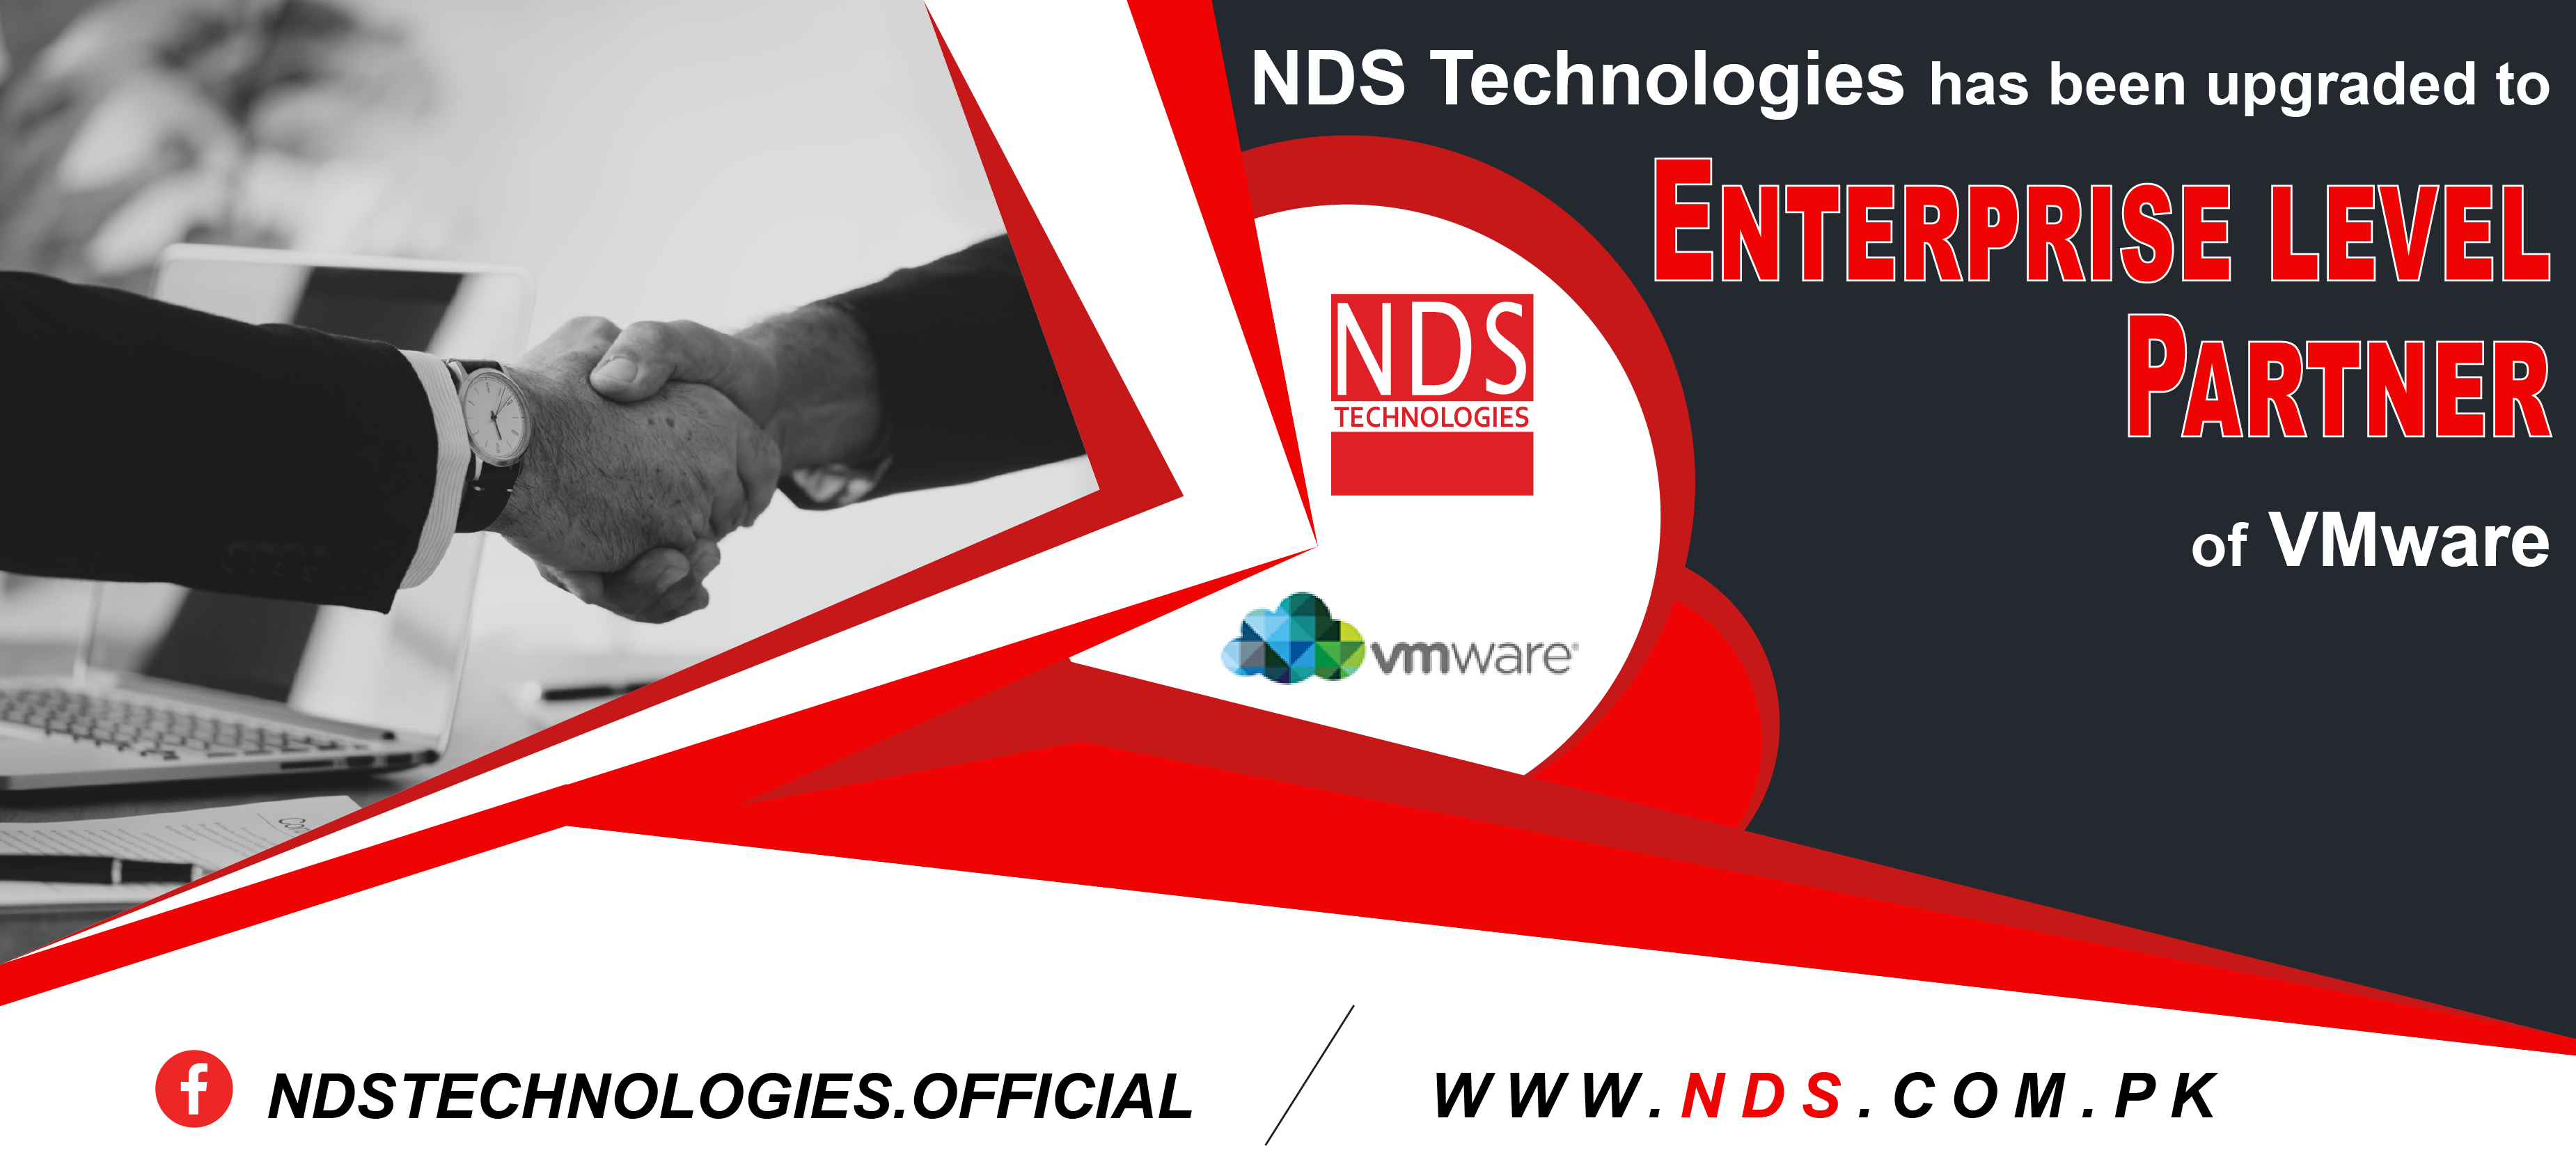 NDS Technologies has been upgraded to Enterprise level Partner of VMware